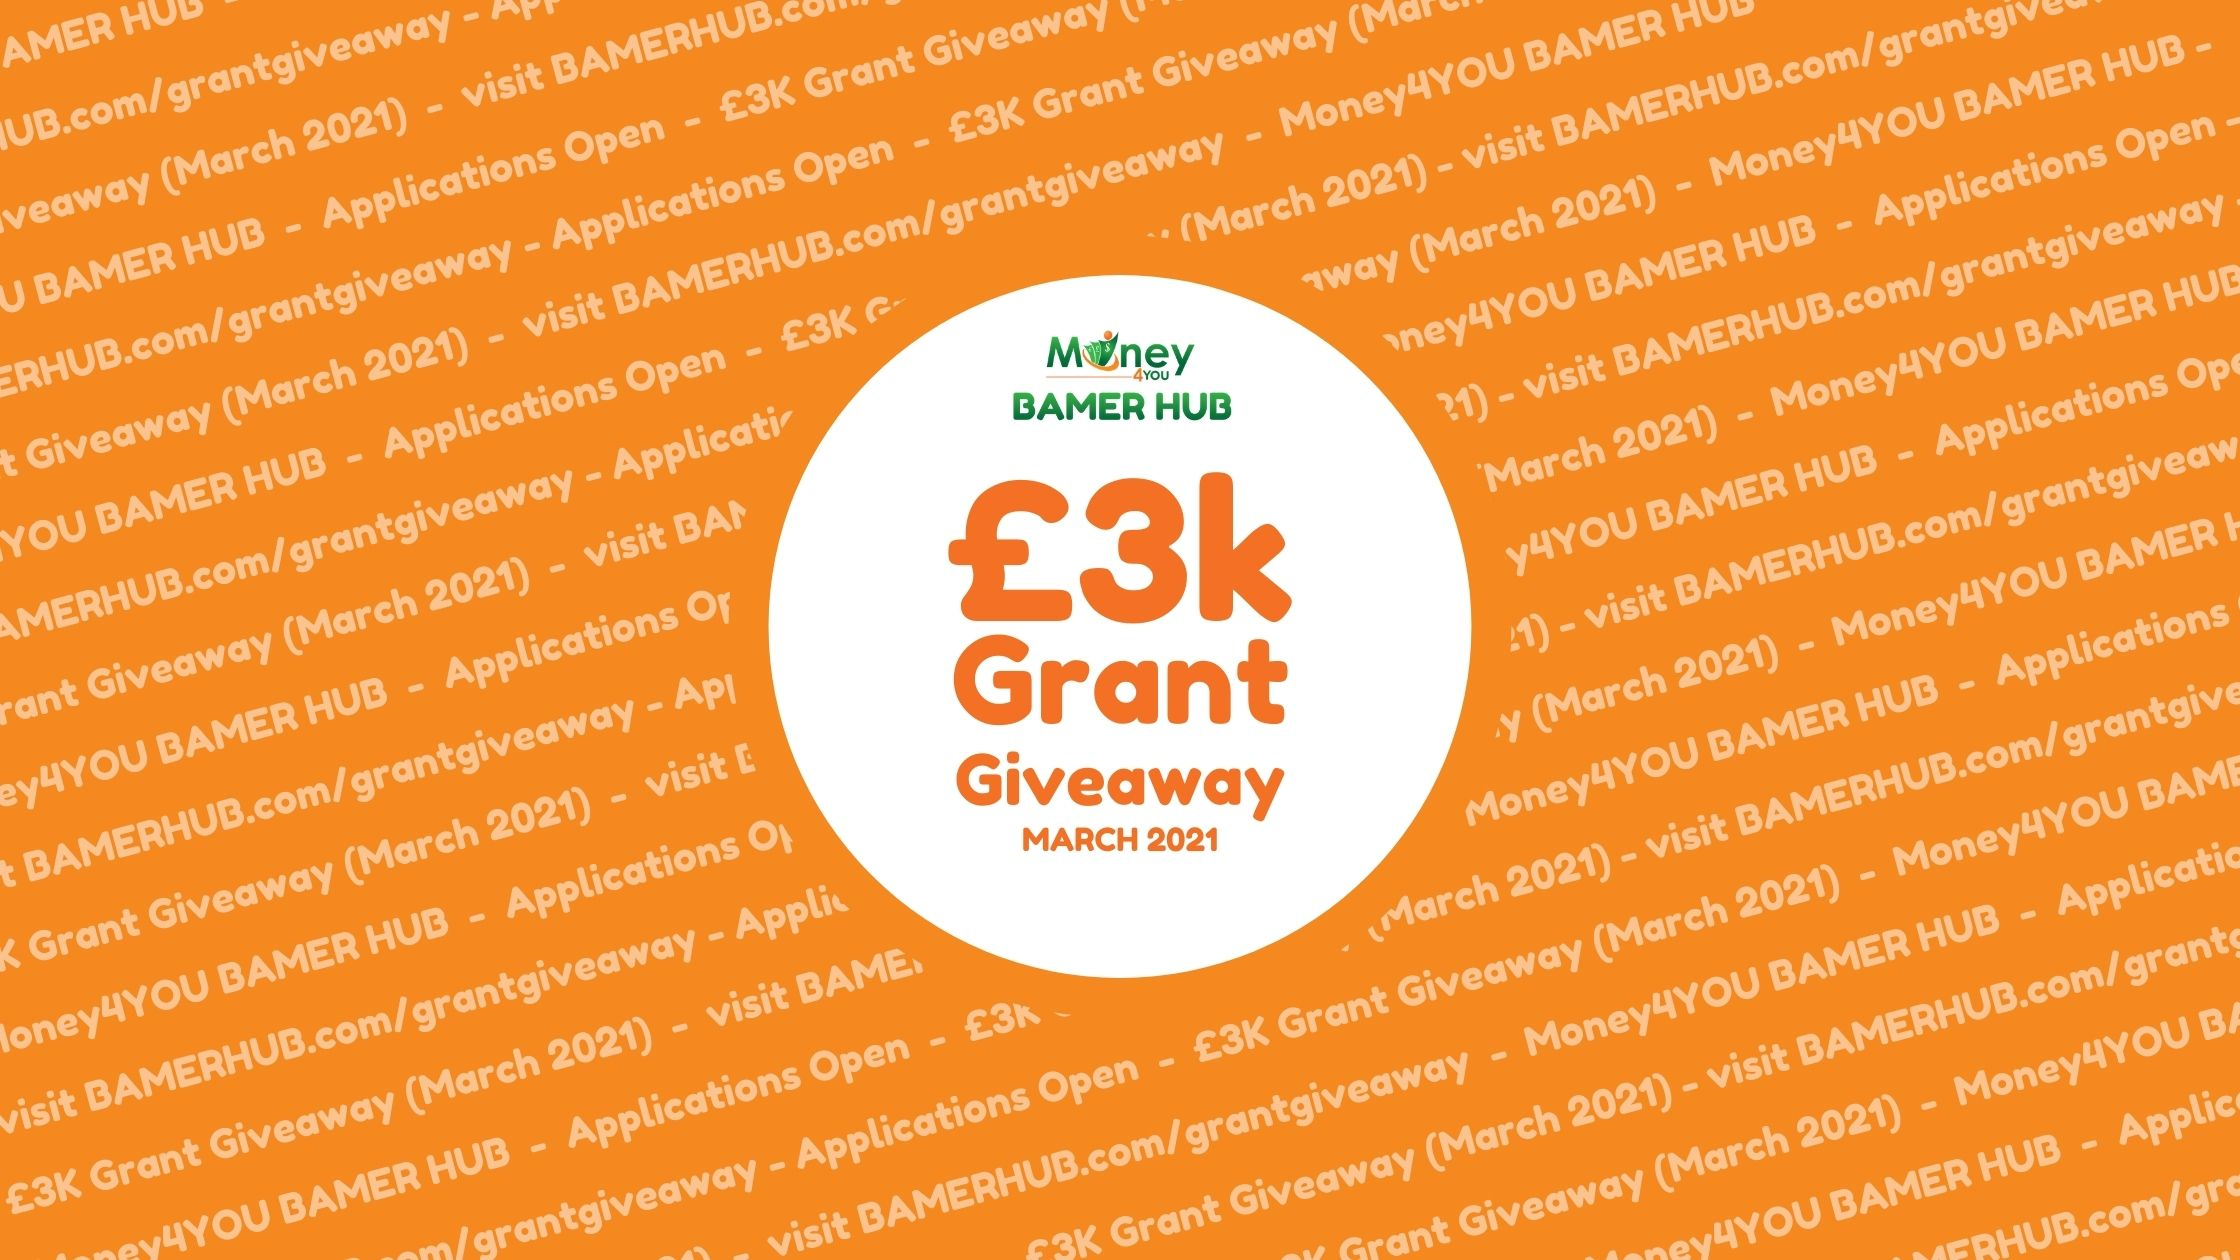 Applications Open (closed 26/2/21) for the £3K Grant Giveaway (March 2021)